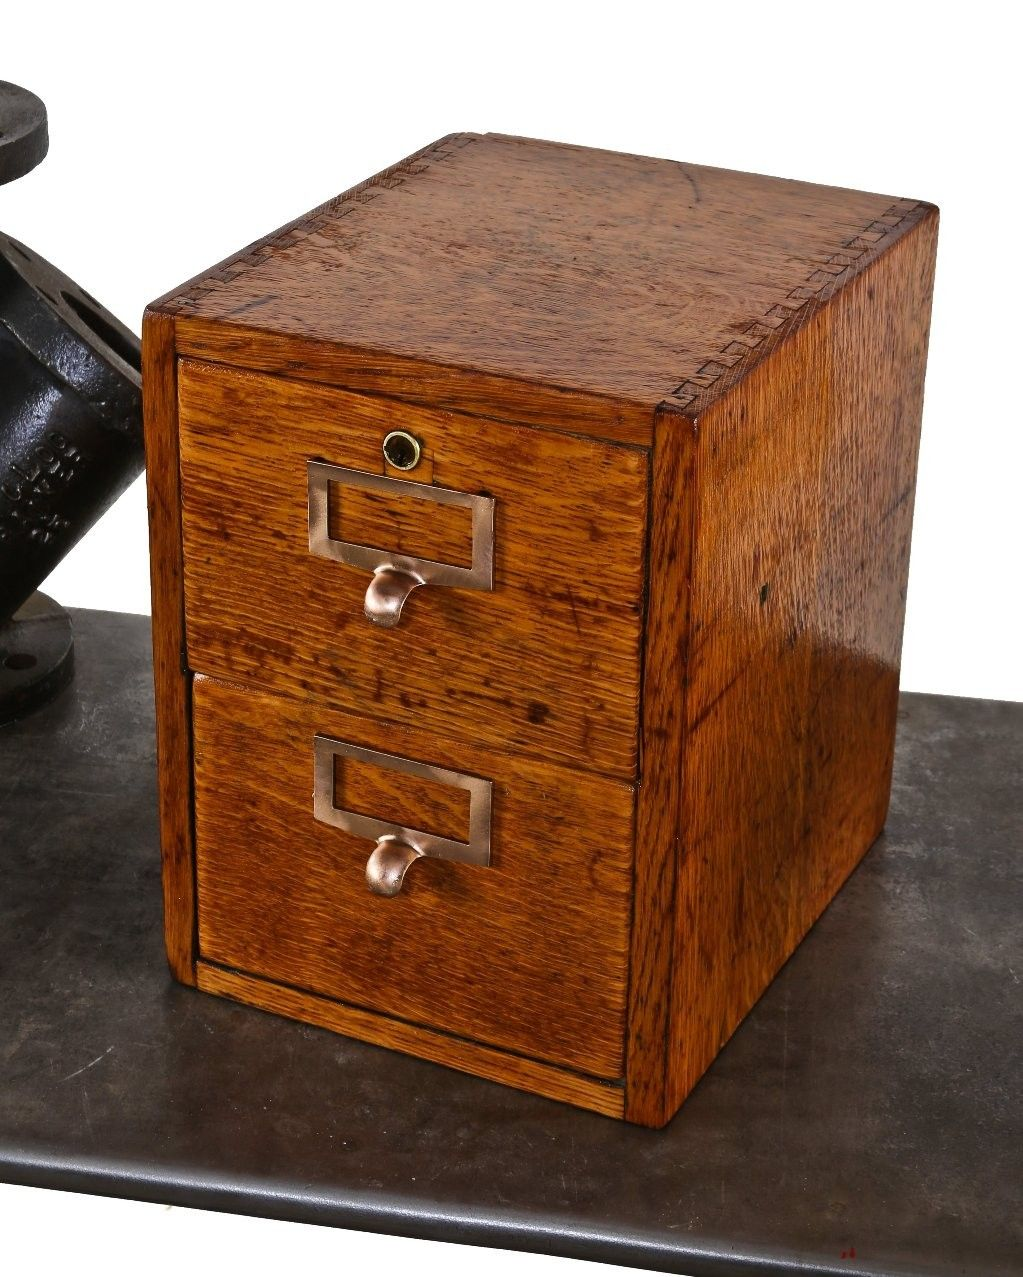 high quality early 20th century american industrial varnished oak wood two-drawer filing cabinet with dovetail joinery